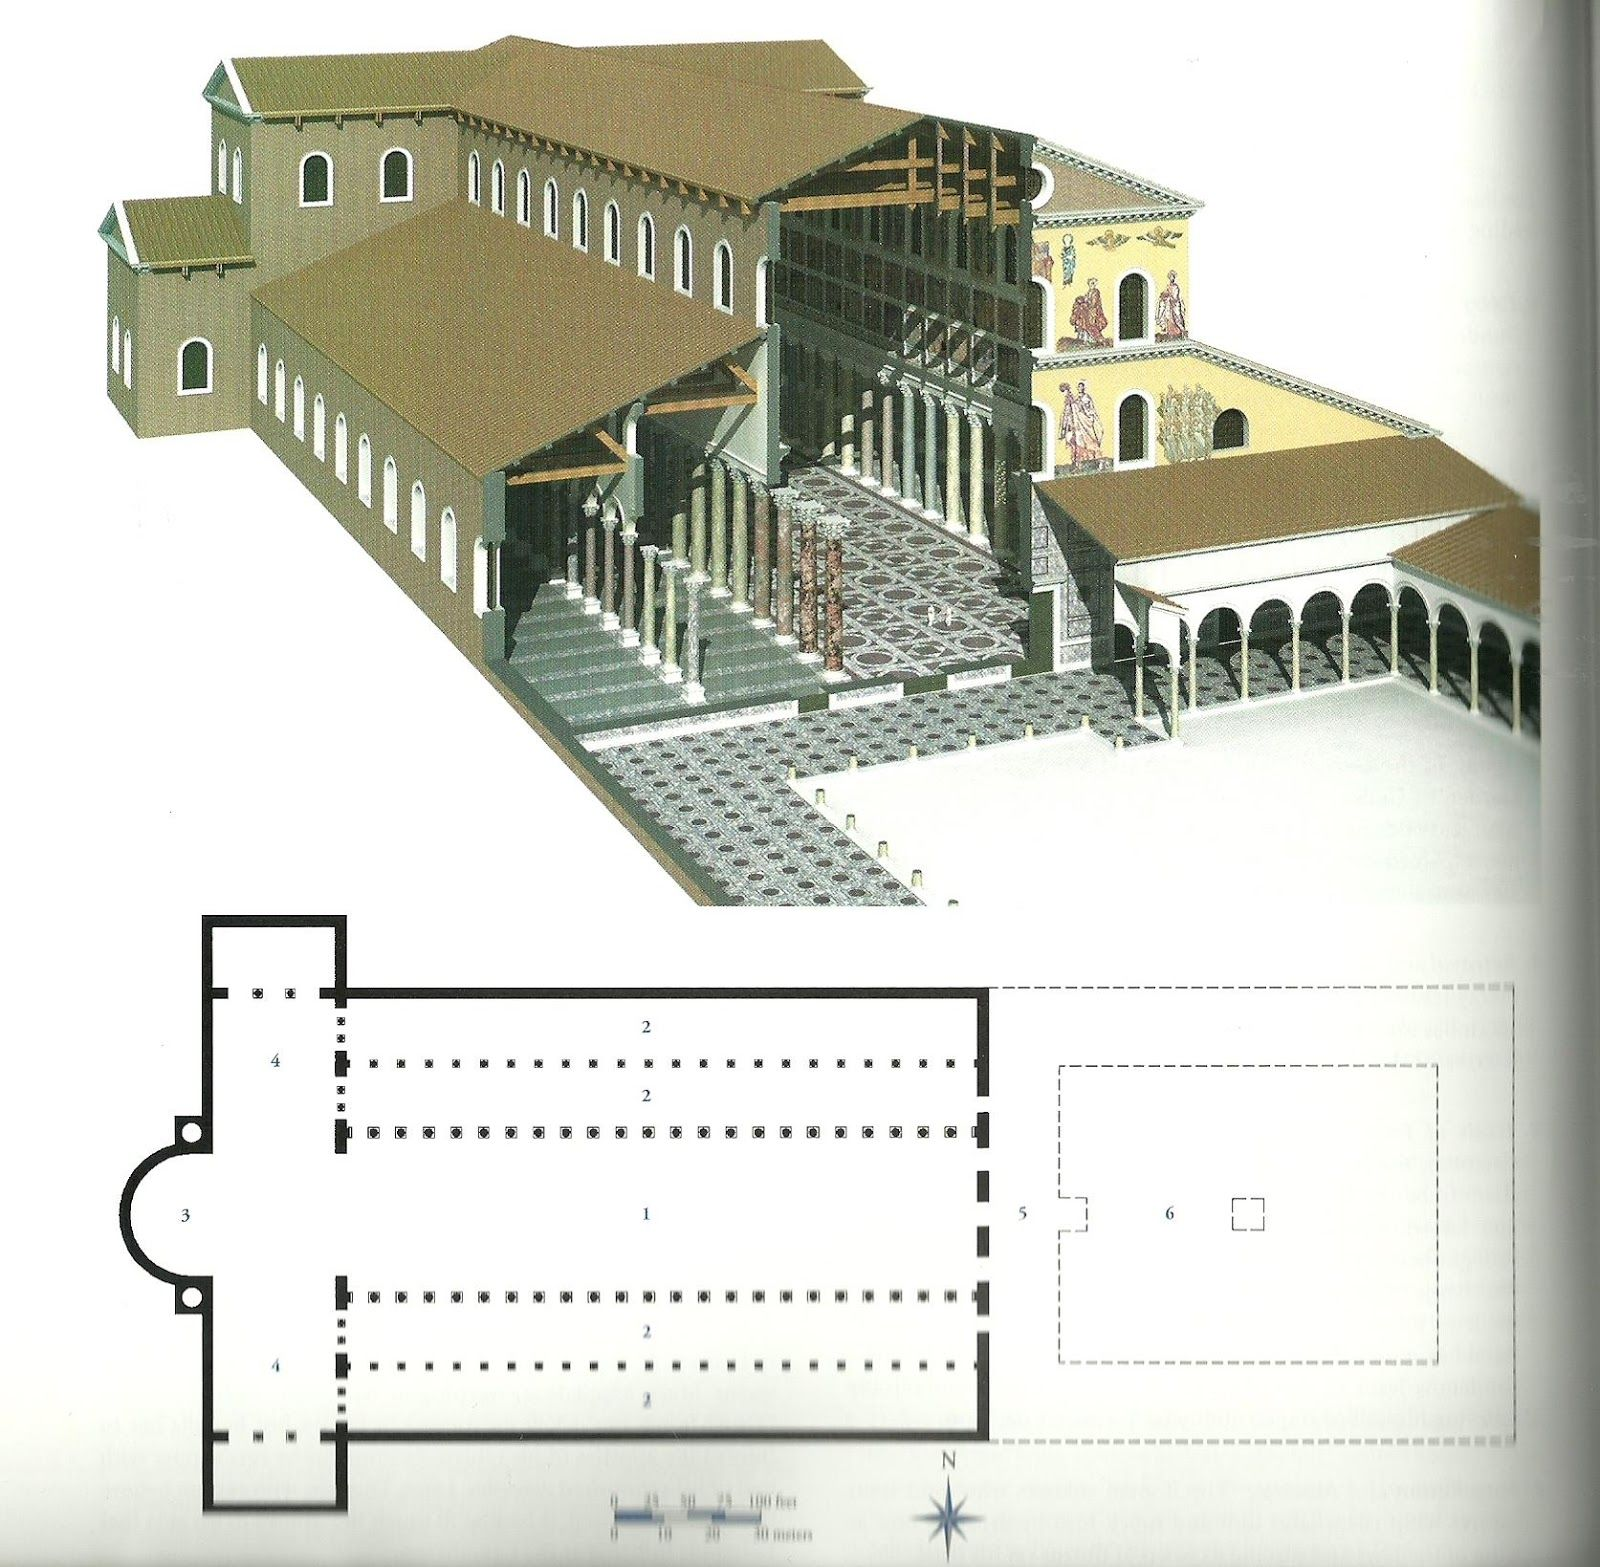 medium resolution of plan and reconstruction drawing old st peter s basilica begun by emperor constantine i 4th century ad